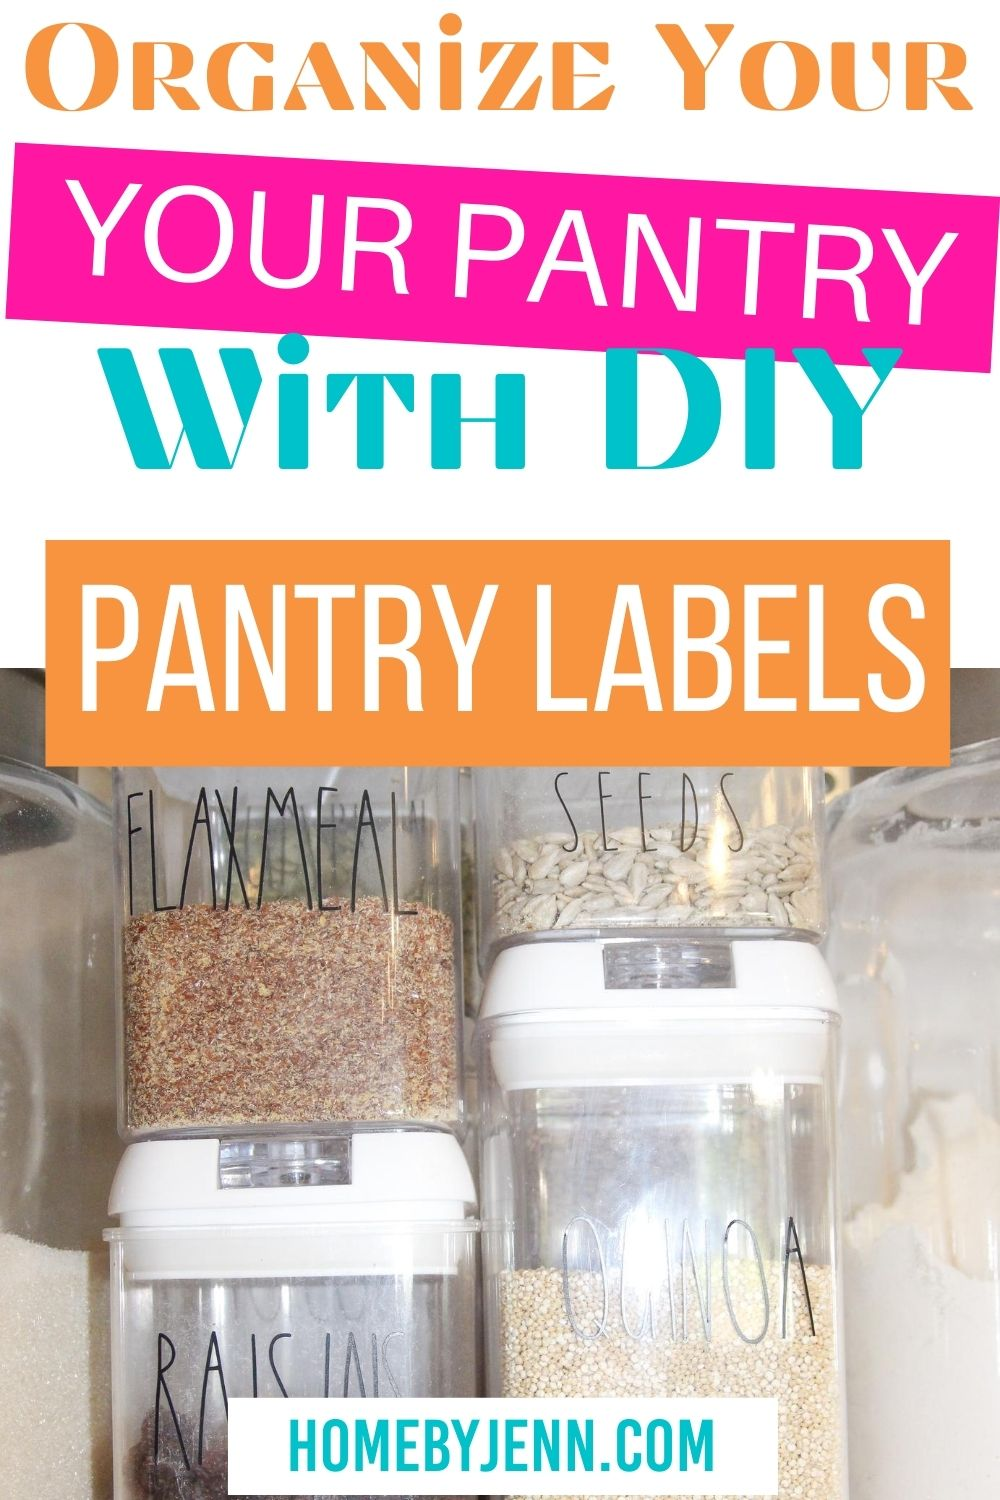 Learn how to DIY your own pantry labels. These custom pantry labels are simple to make in just a little bit of time. Grab the free pantry label printable to make your own custom labels. #freeprintable #customlabel #kitchen #organizing #organizedkitchen #labels #DIY via @homebyjenn